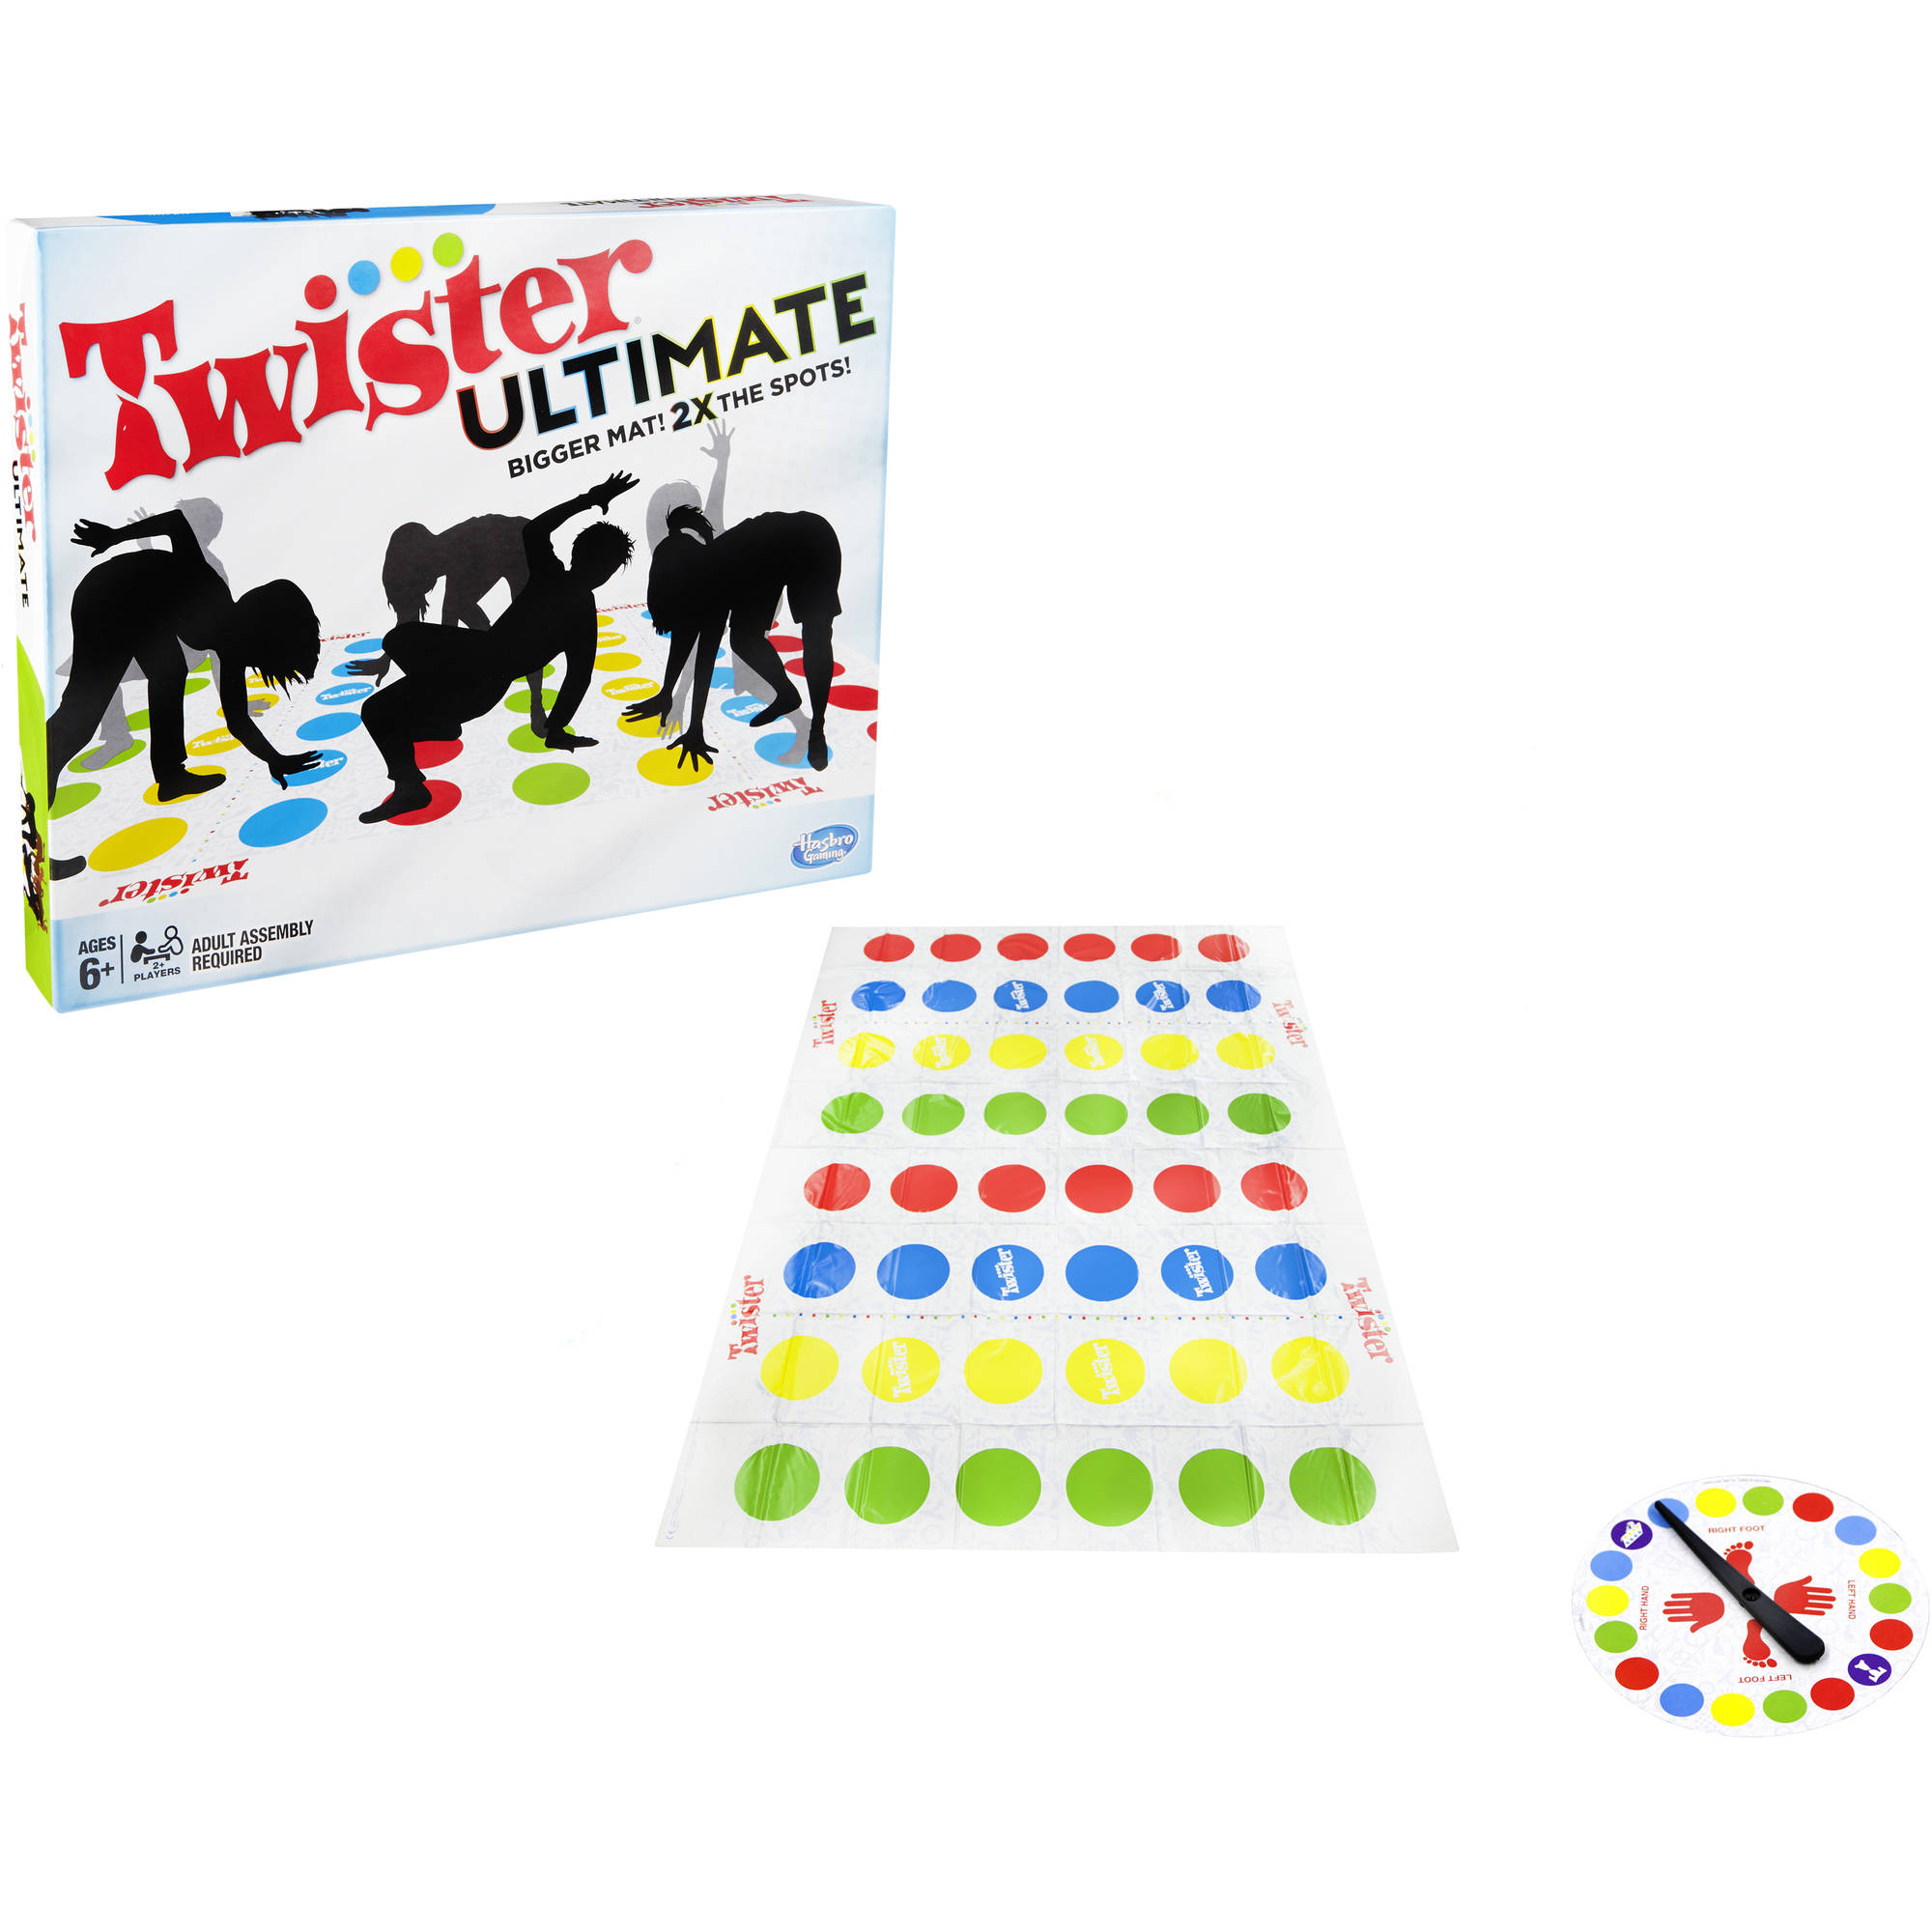 Twister Ultimate Bigger Mat More Colored Spots Family Party Game